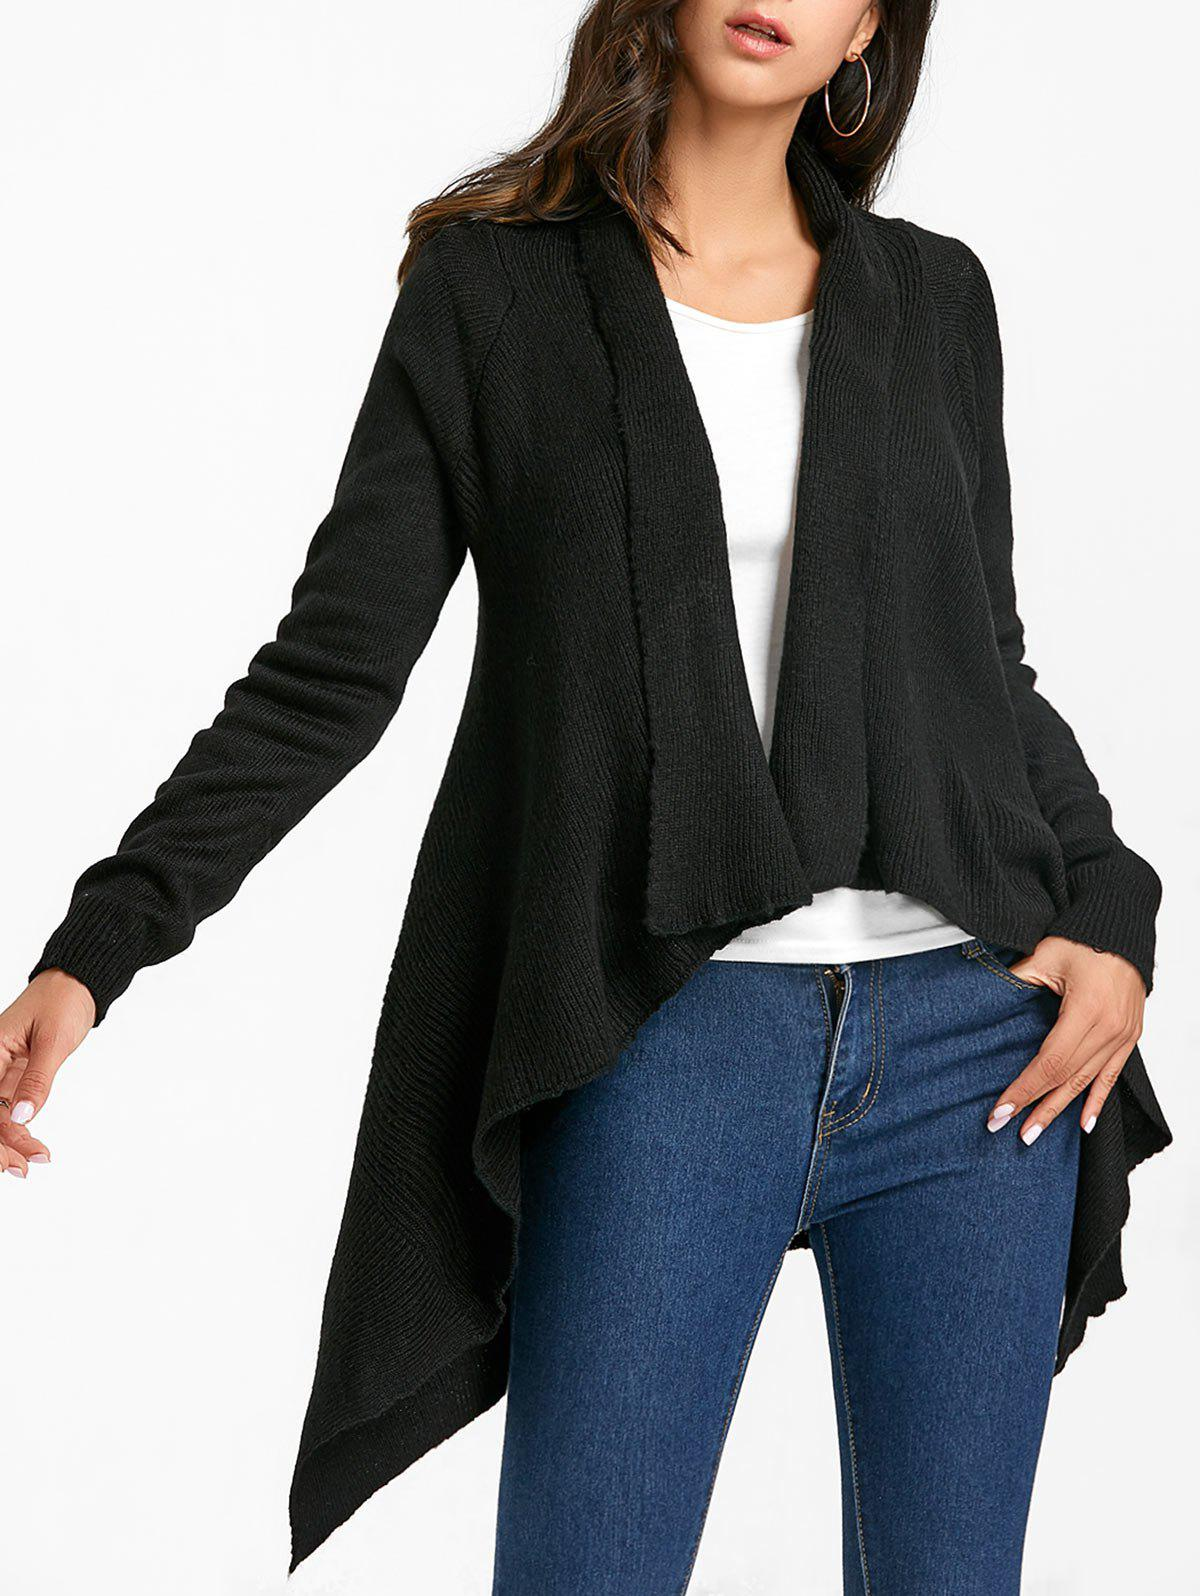 Hot Shawl Collar Asymmetric Knitted Cardigan